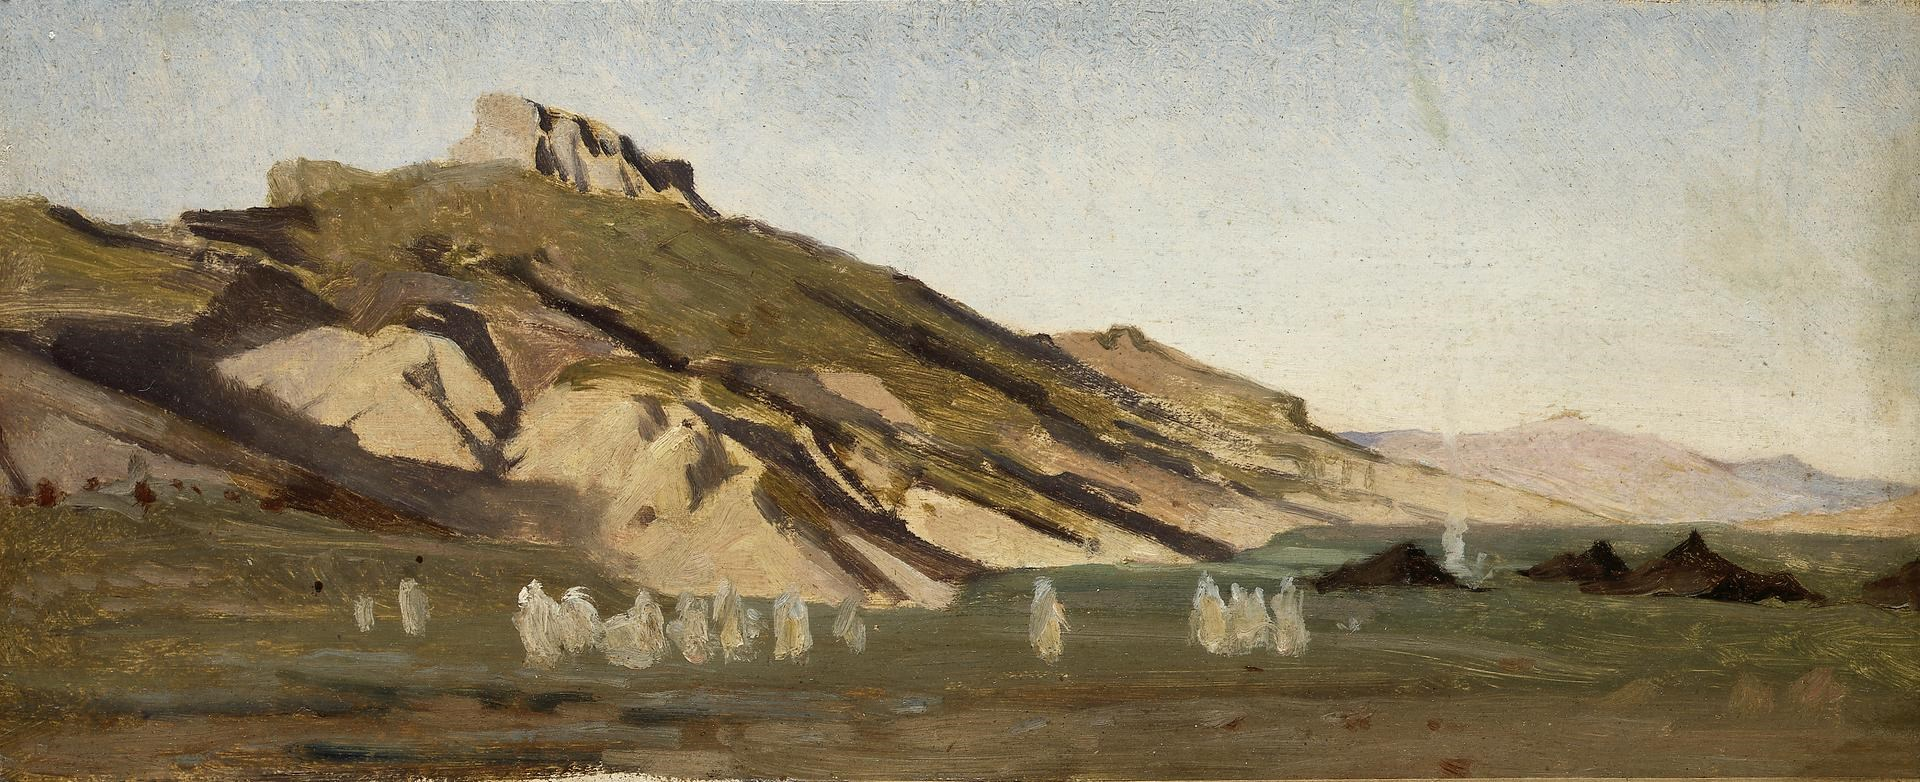 Mountains in North Africa, with a Bedouin Camp by Gustave Guillaumet